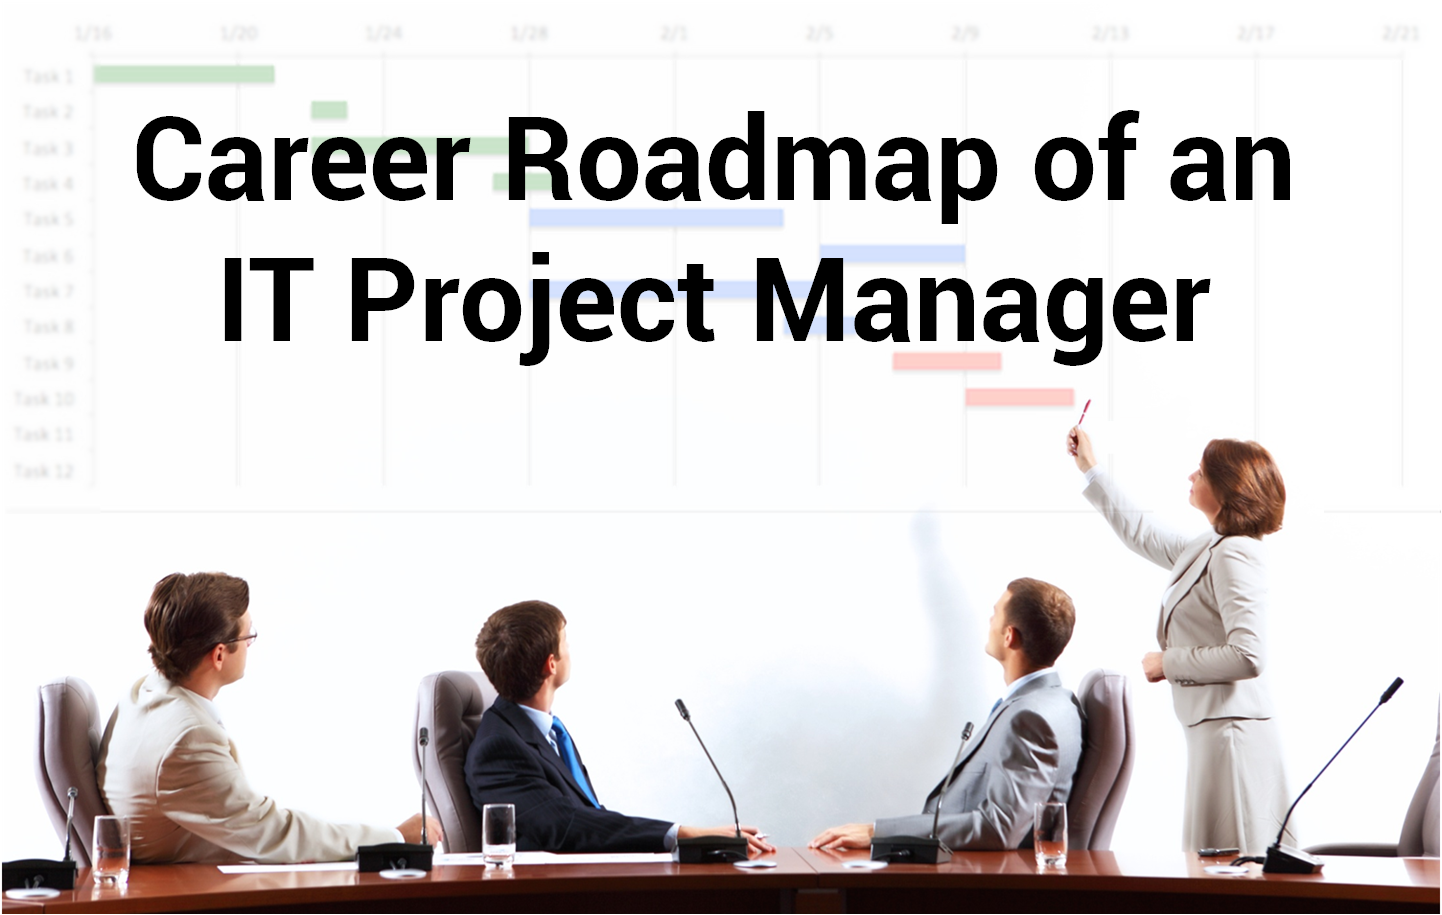 Career Roadmap of an IT Project Manager - Image 1